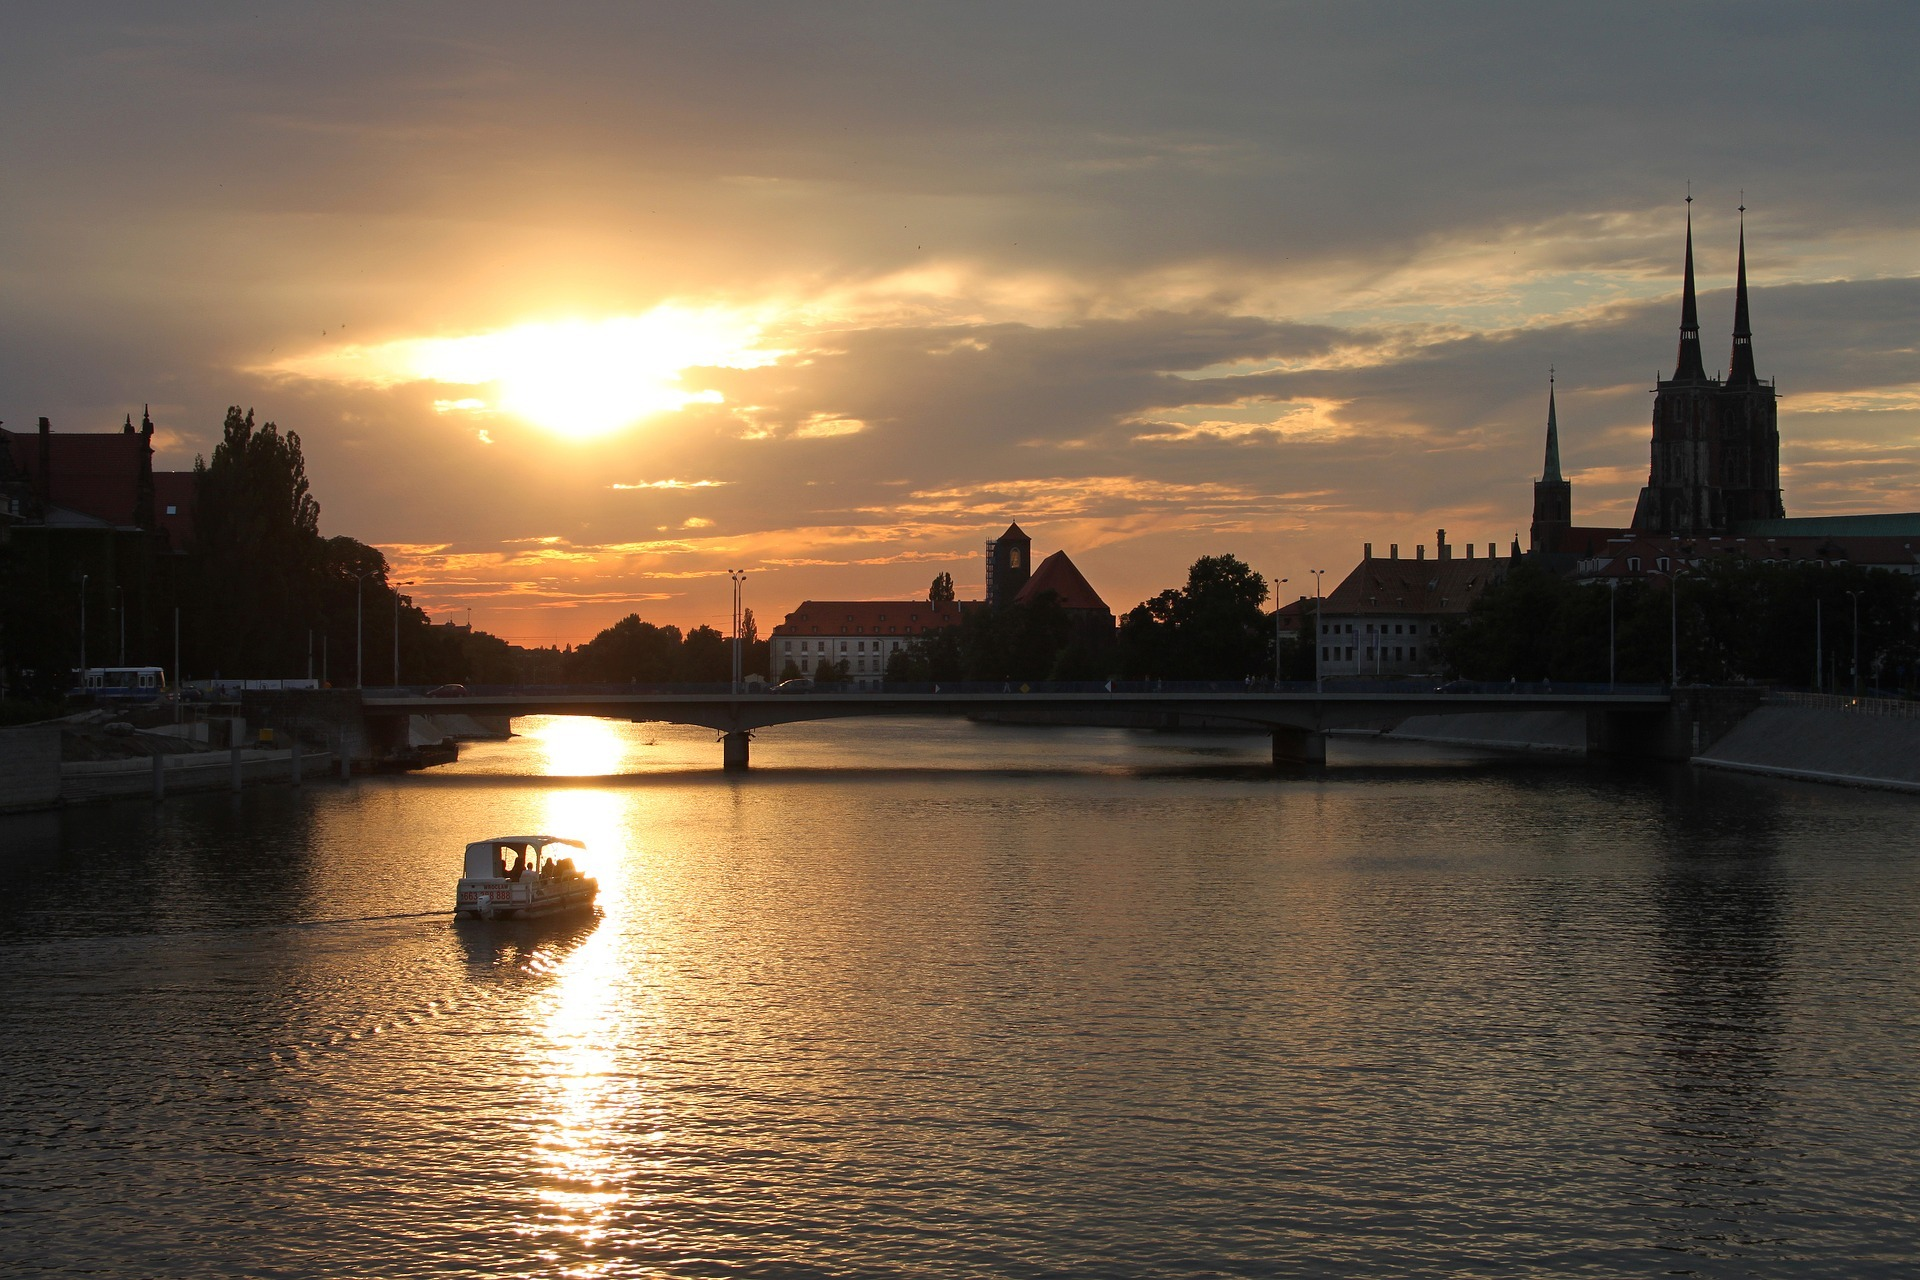 Wroclaw at sunset. Used under Creative Commons. Pic credit: Emilia Baczynska